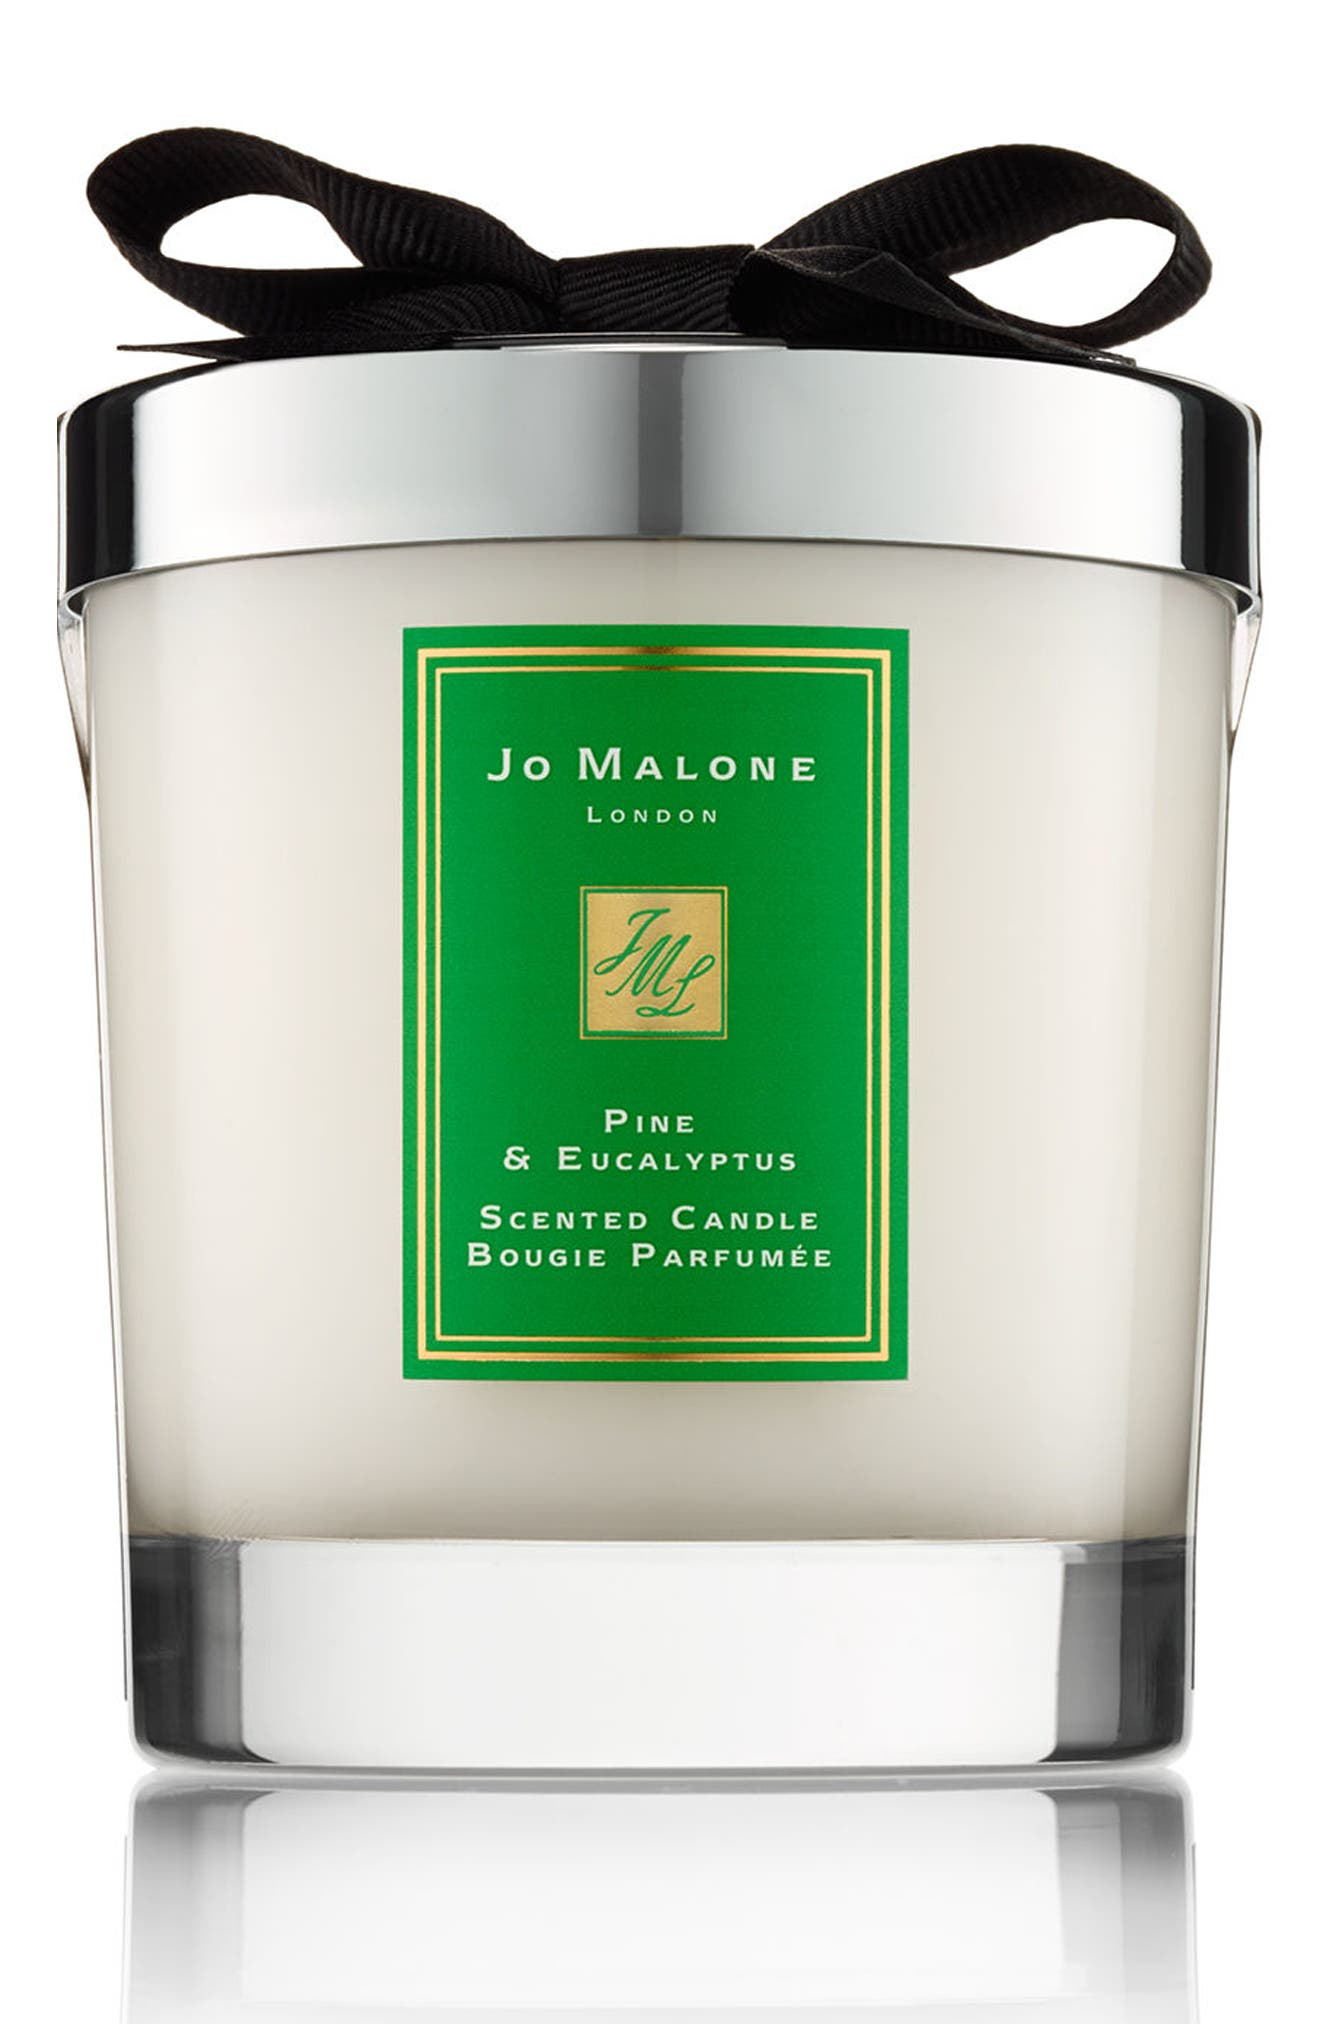 Jo Malone London™ Pine & Eucalyptus Scented Candle